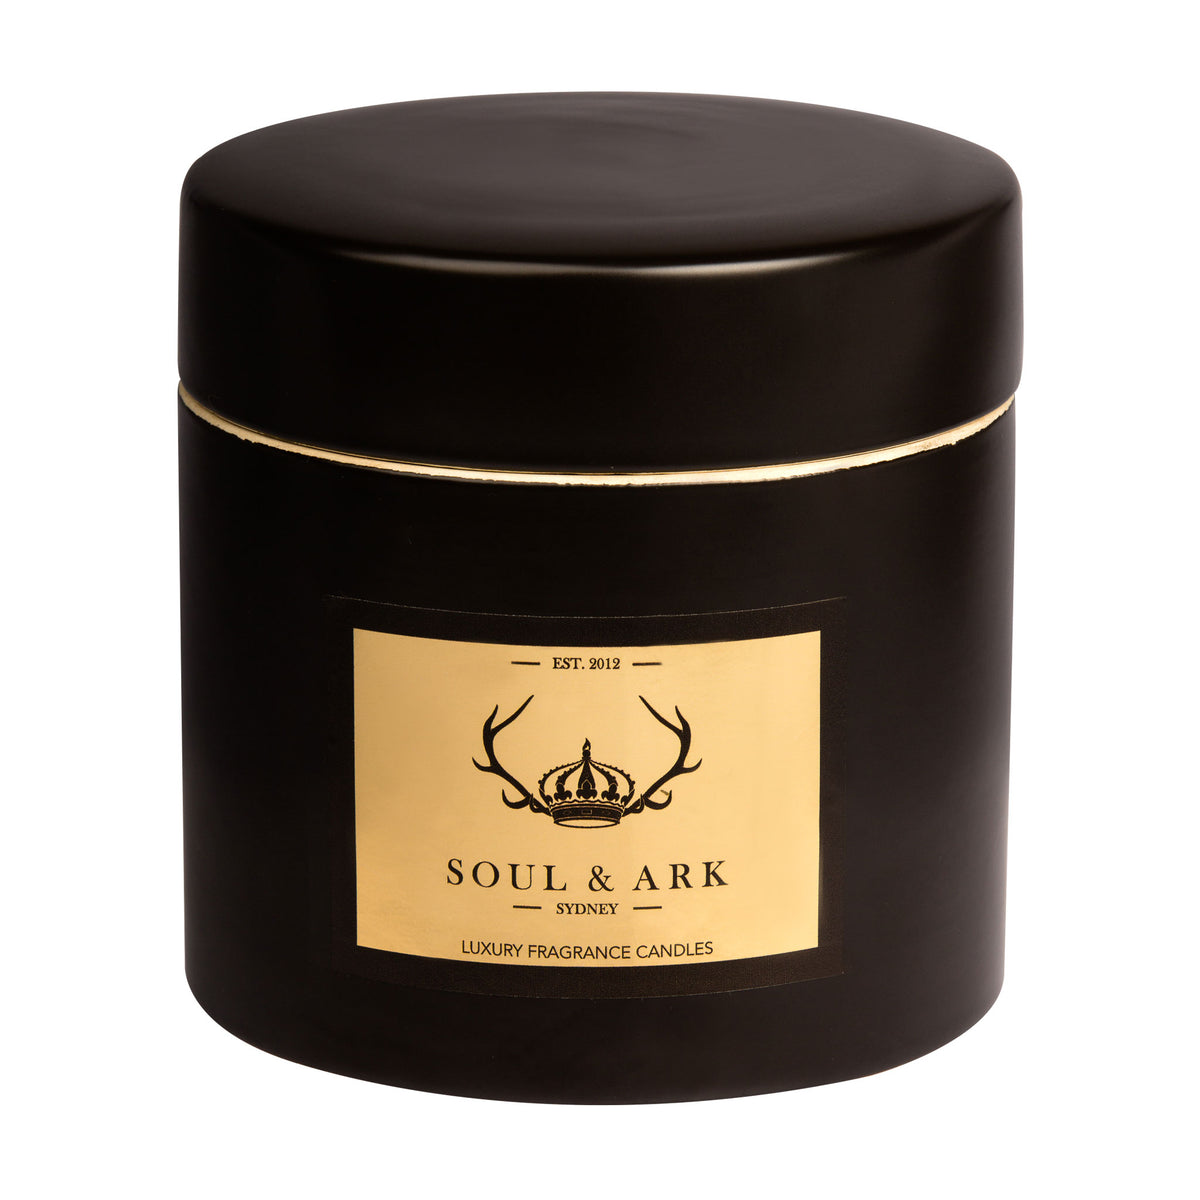 Soul & Ark Black Ceramic Soy Candle